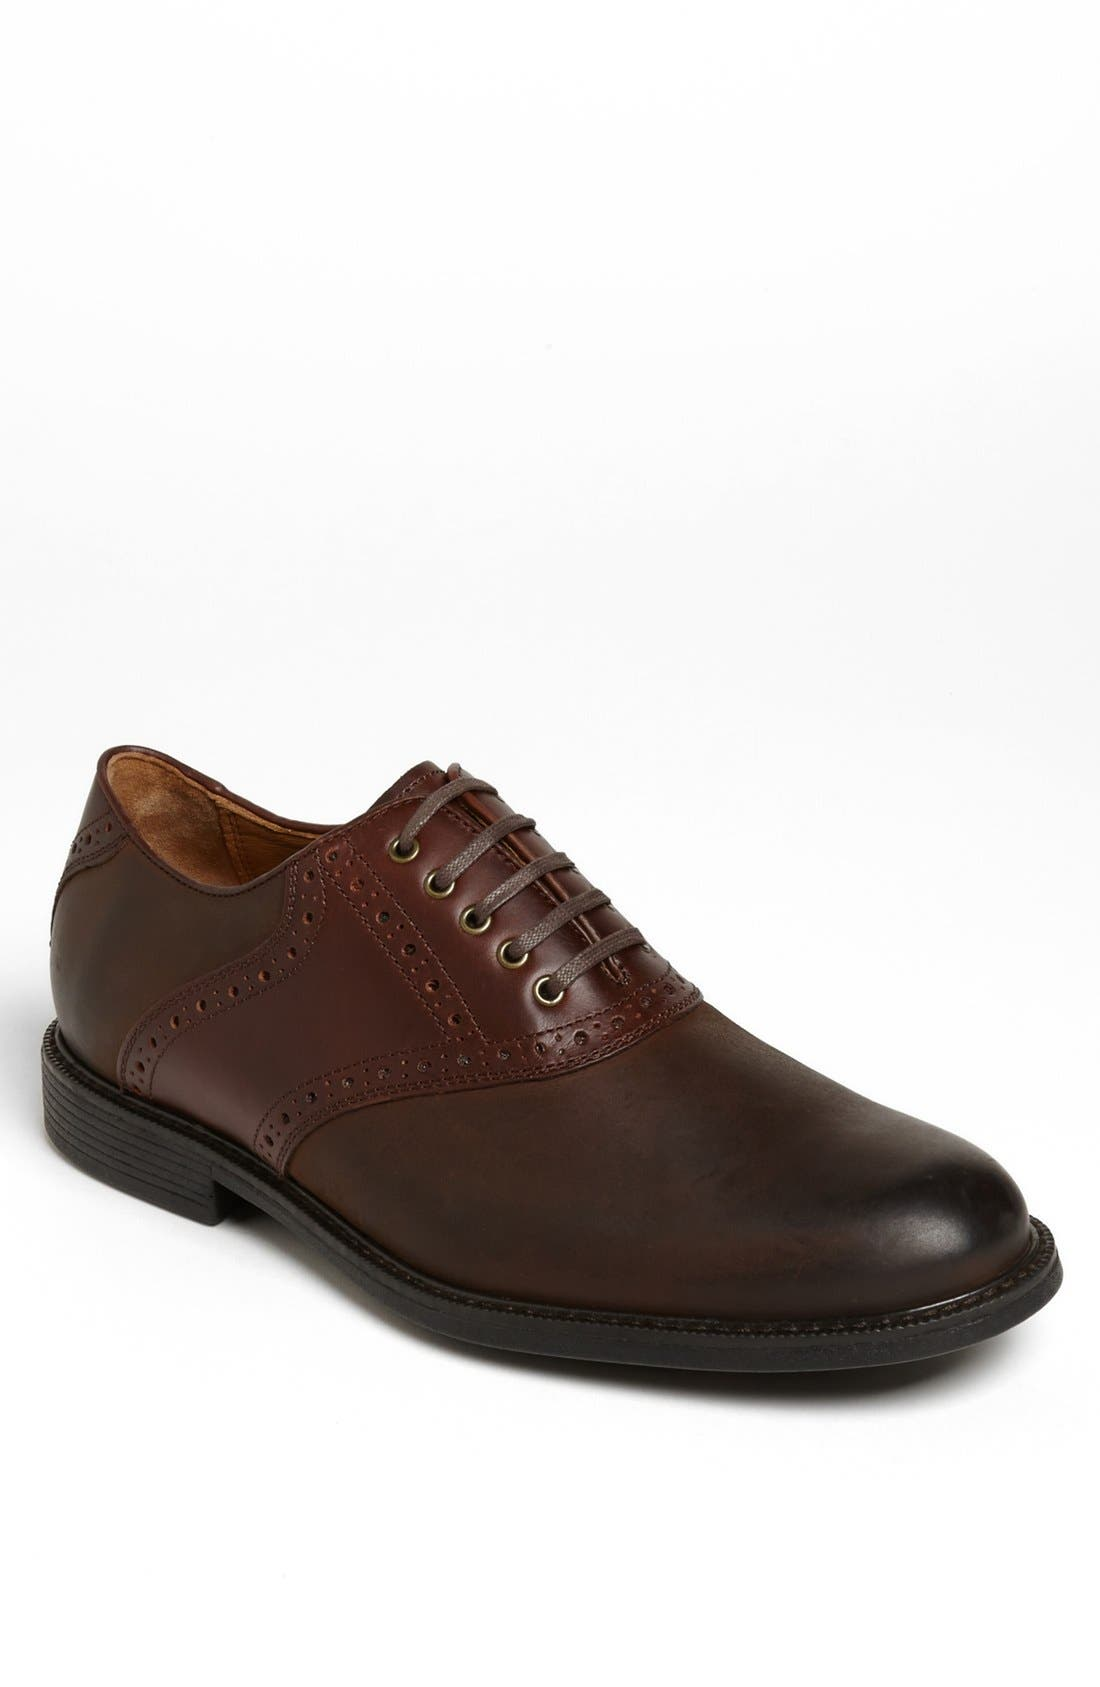 Alternate Image 1 Selected - Johnston & Murphy 'Cardell' Waterproof Saddle Oxford (Men)